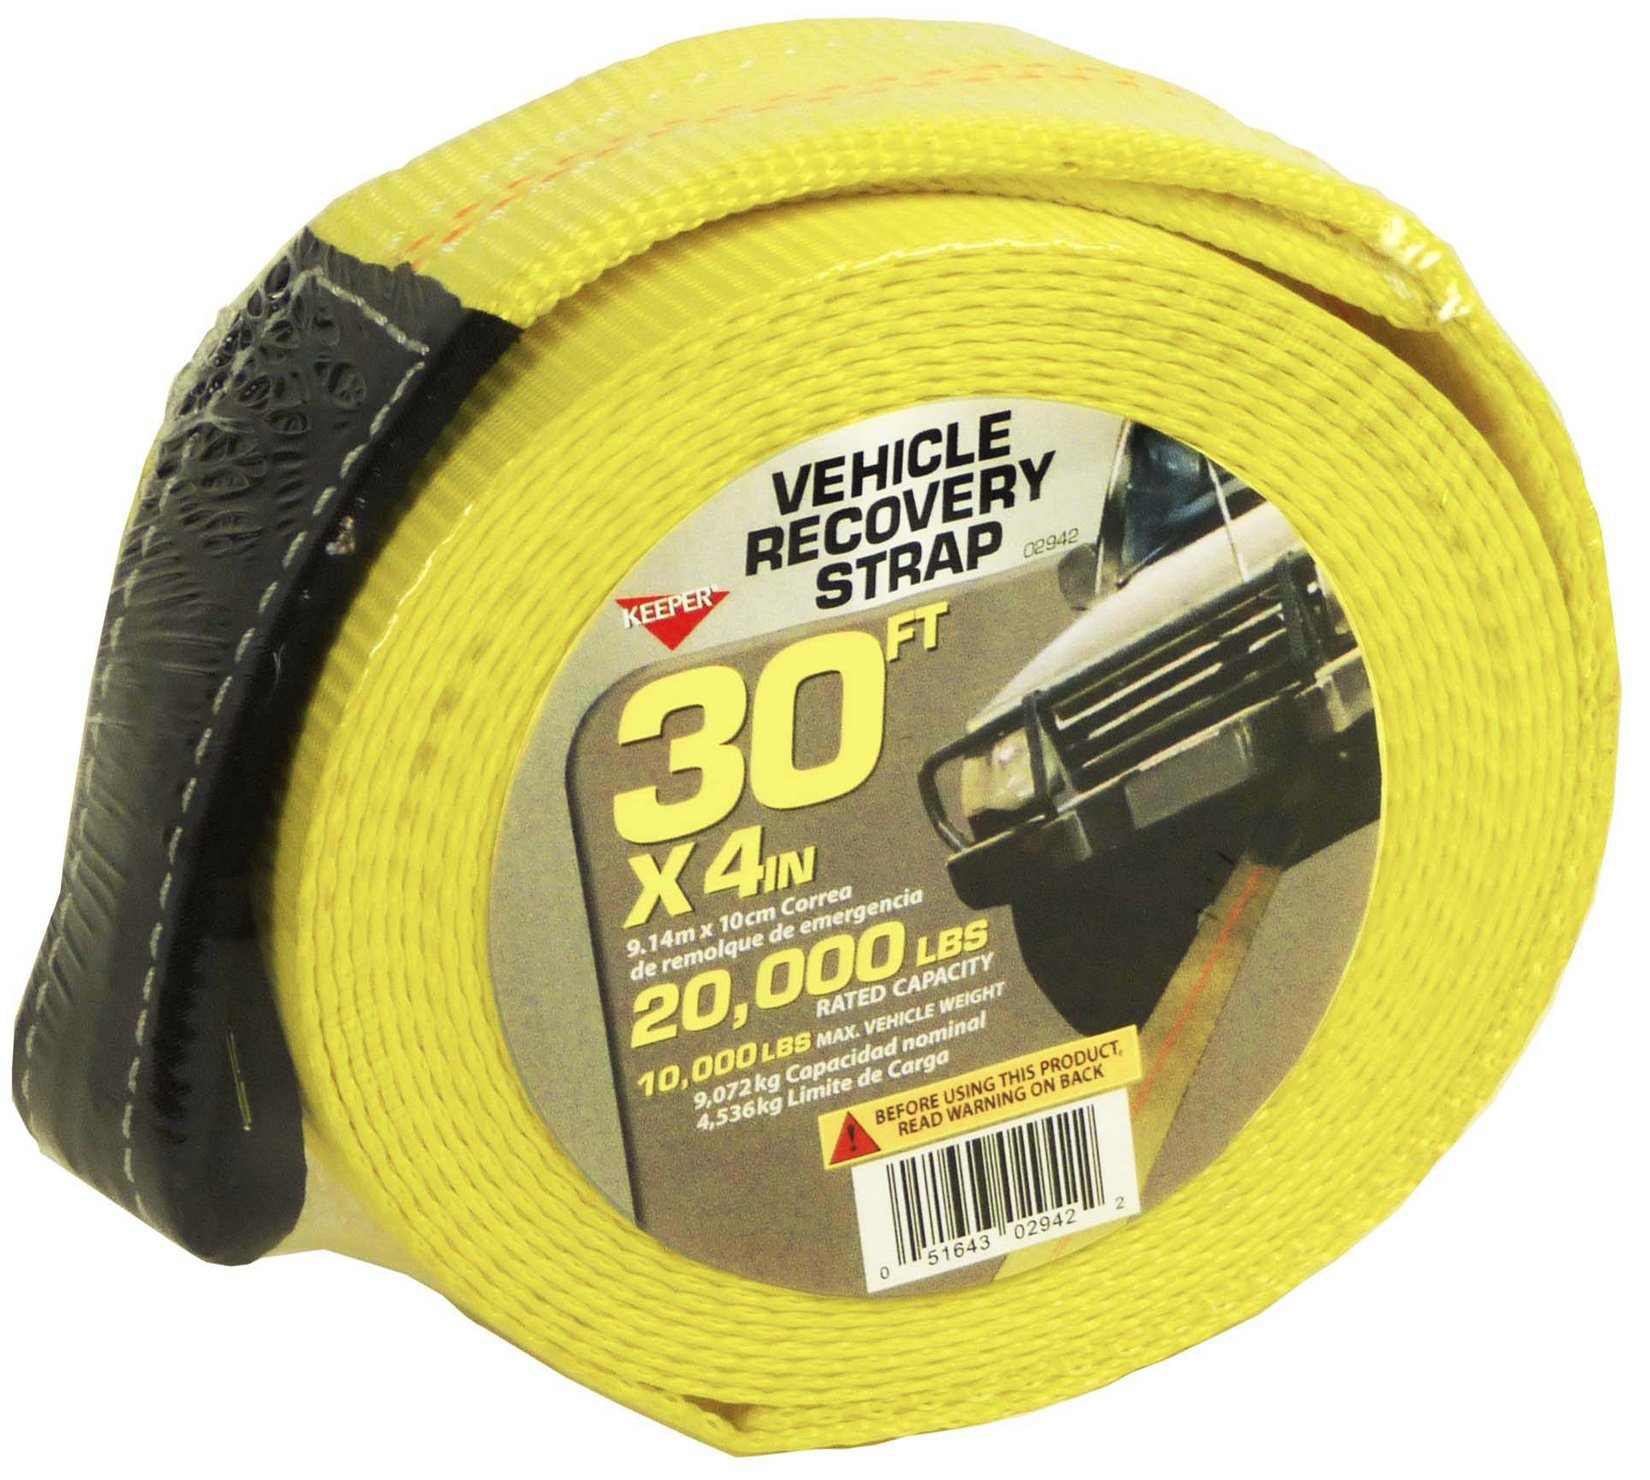 Keeper 02942 30' x 4'' Recovery Strap by Keeper